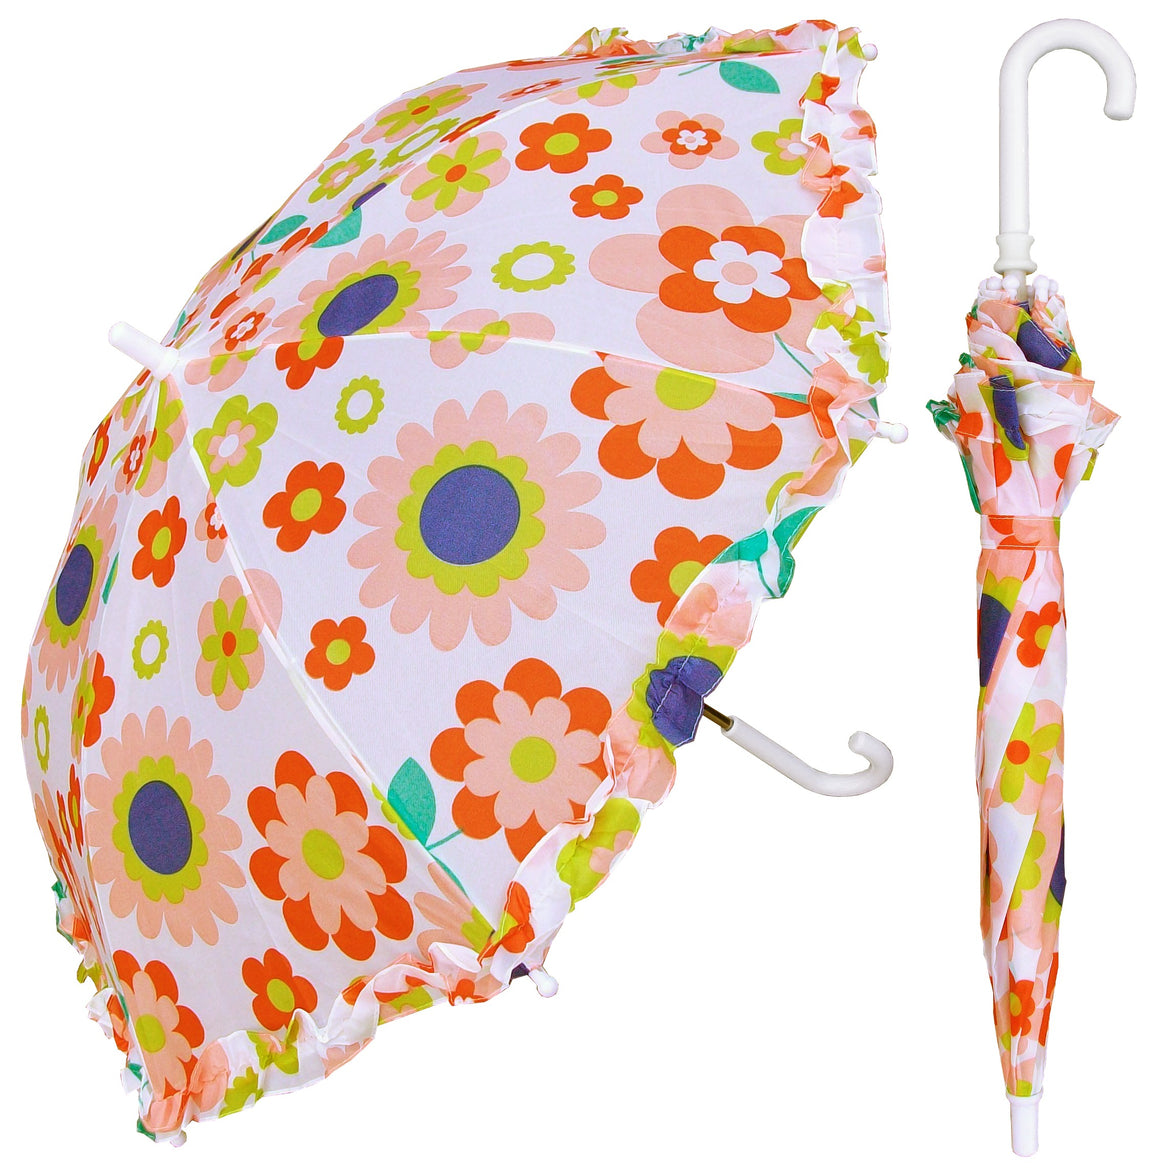 Wholesale Children's Retro Flower Print Umbrella